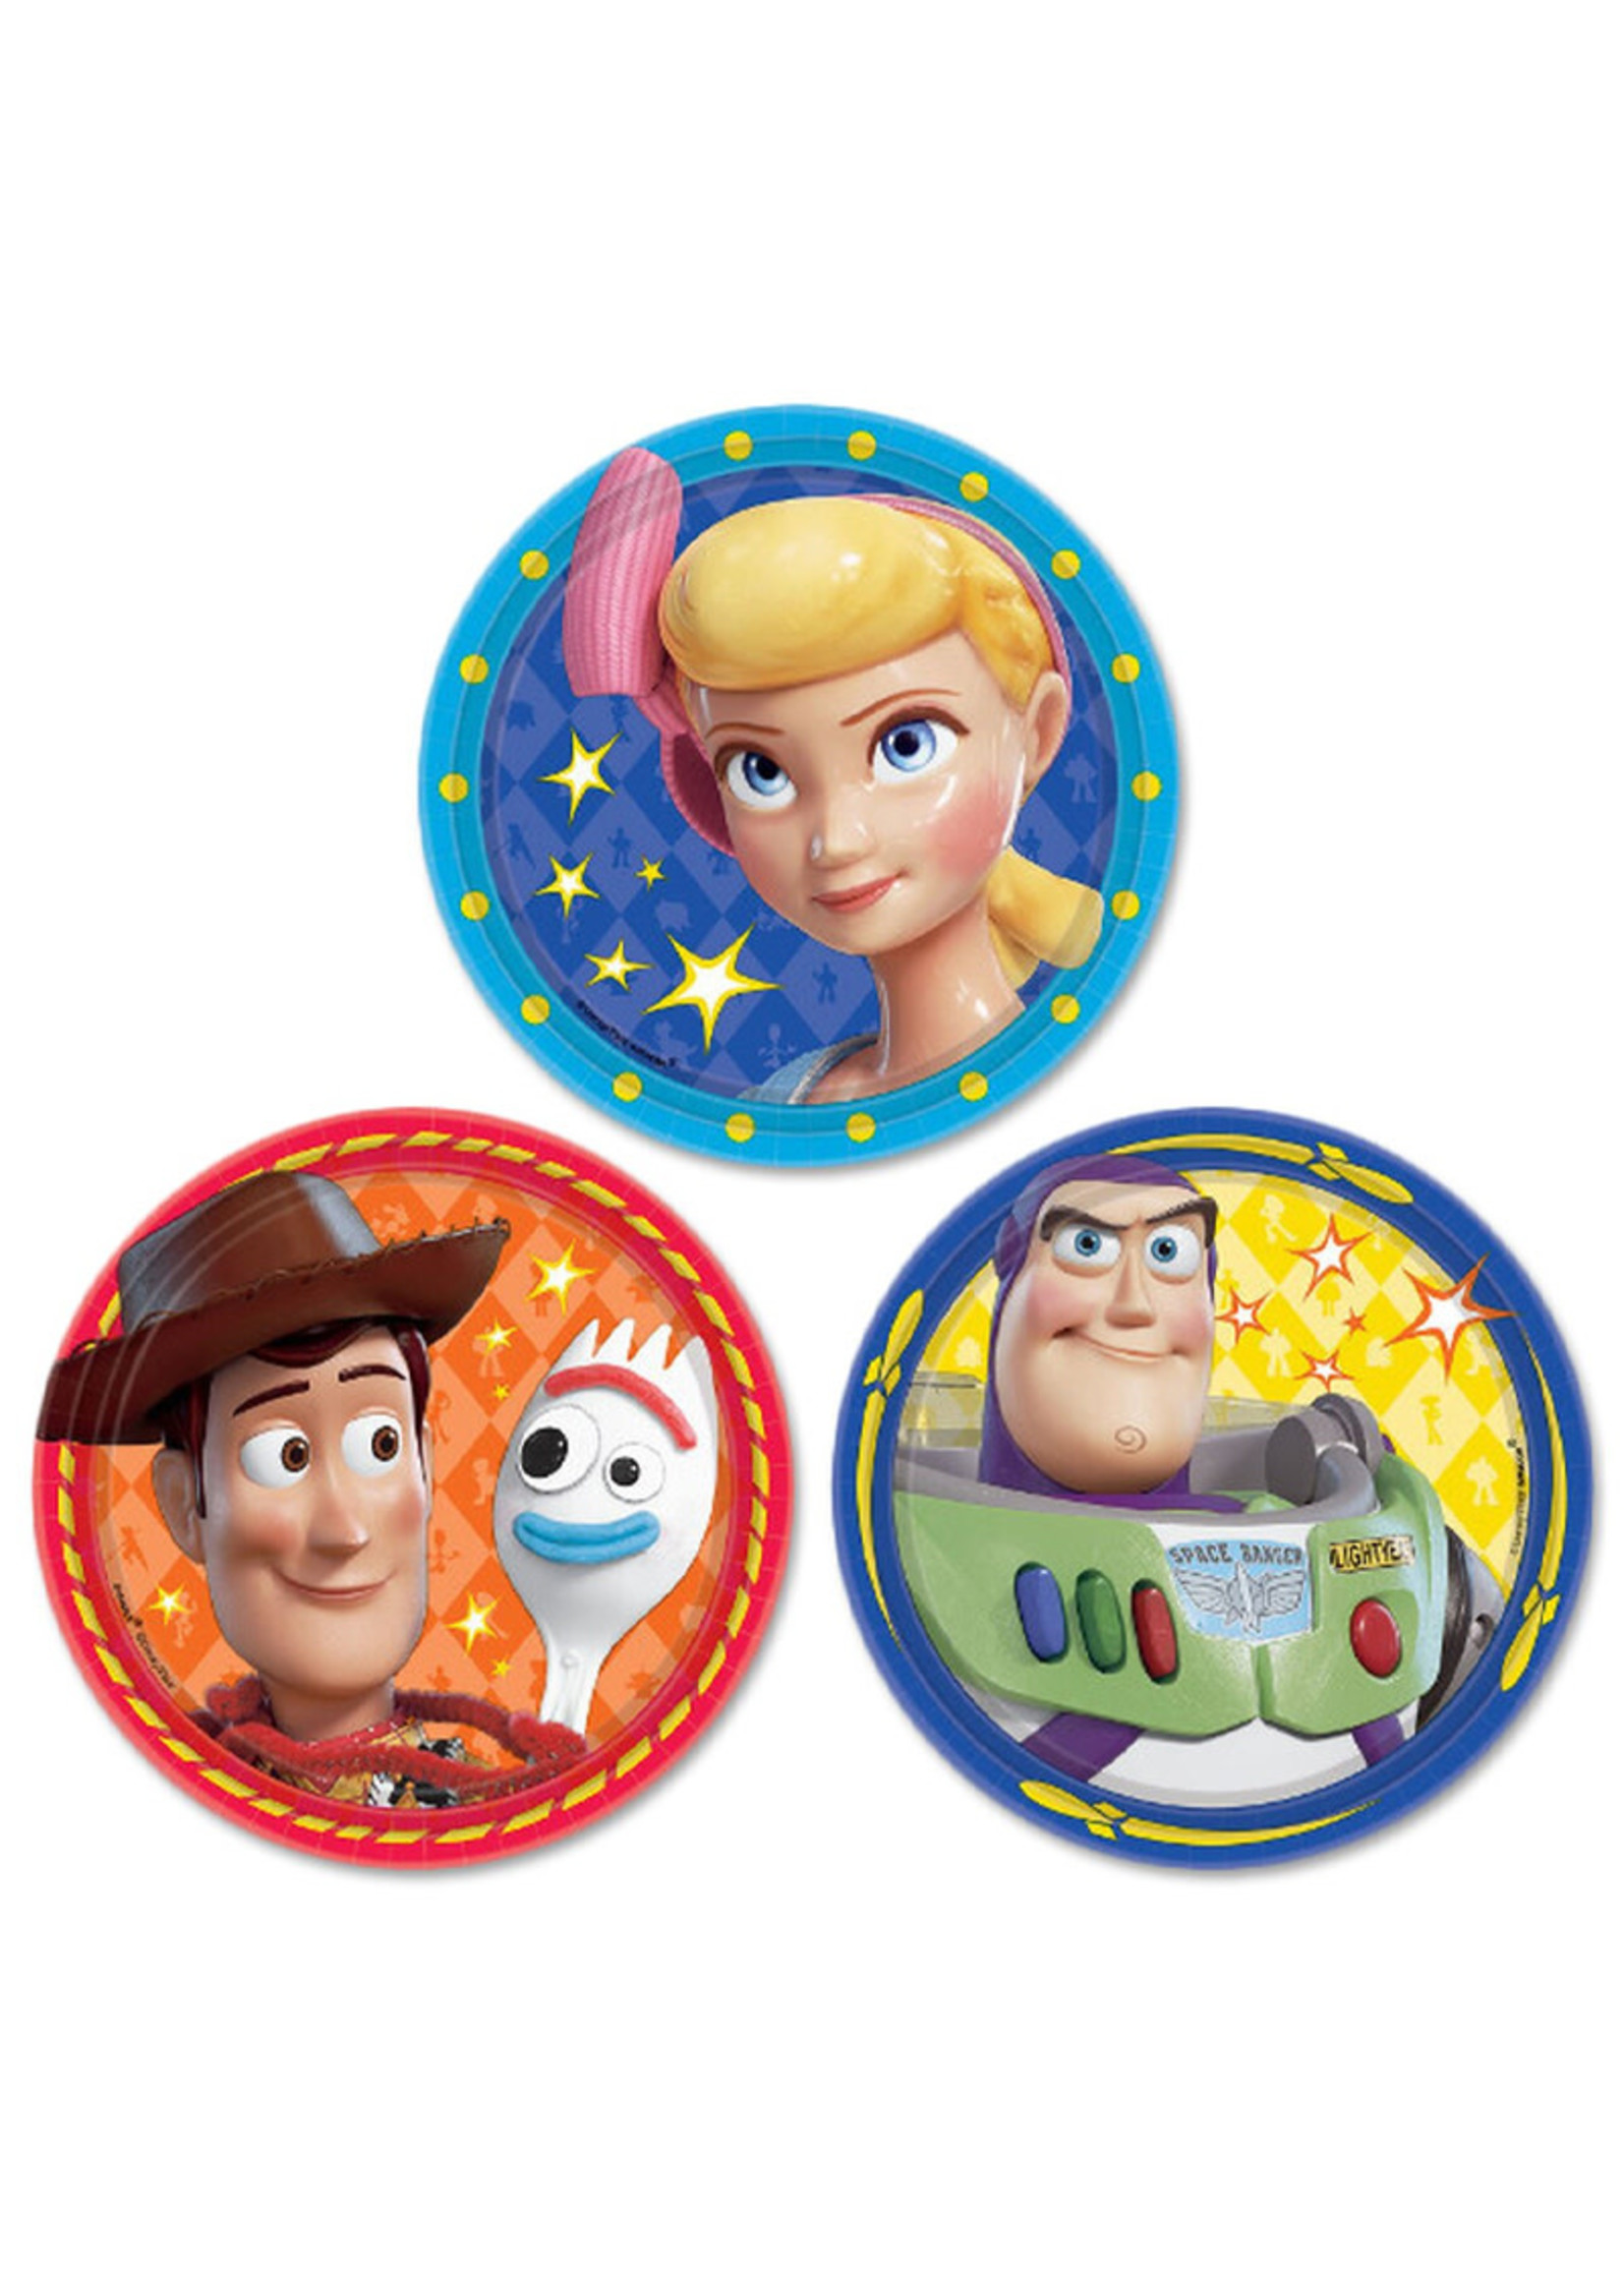 Toy Story 4 Assorted Dessert Plates 7 inch - 8 ct